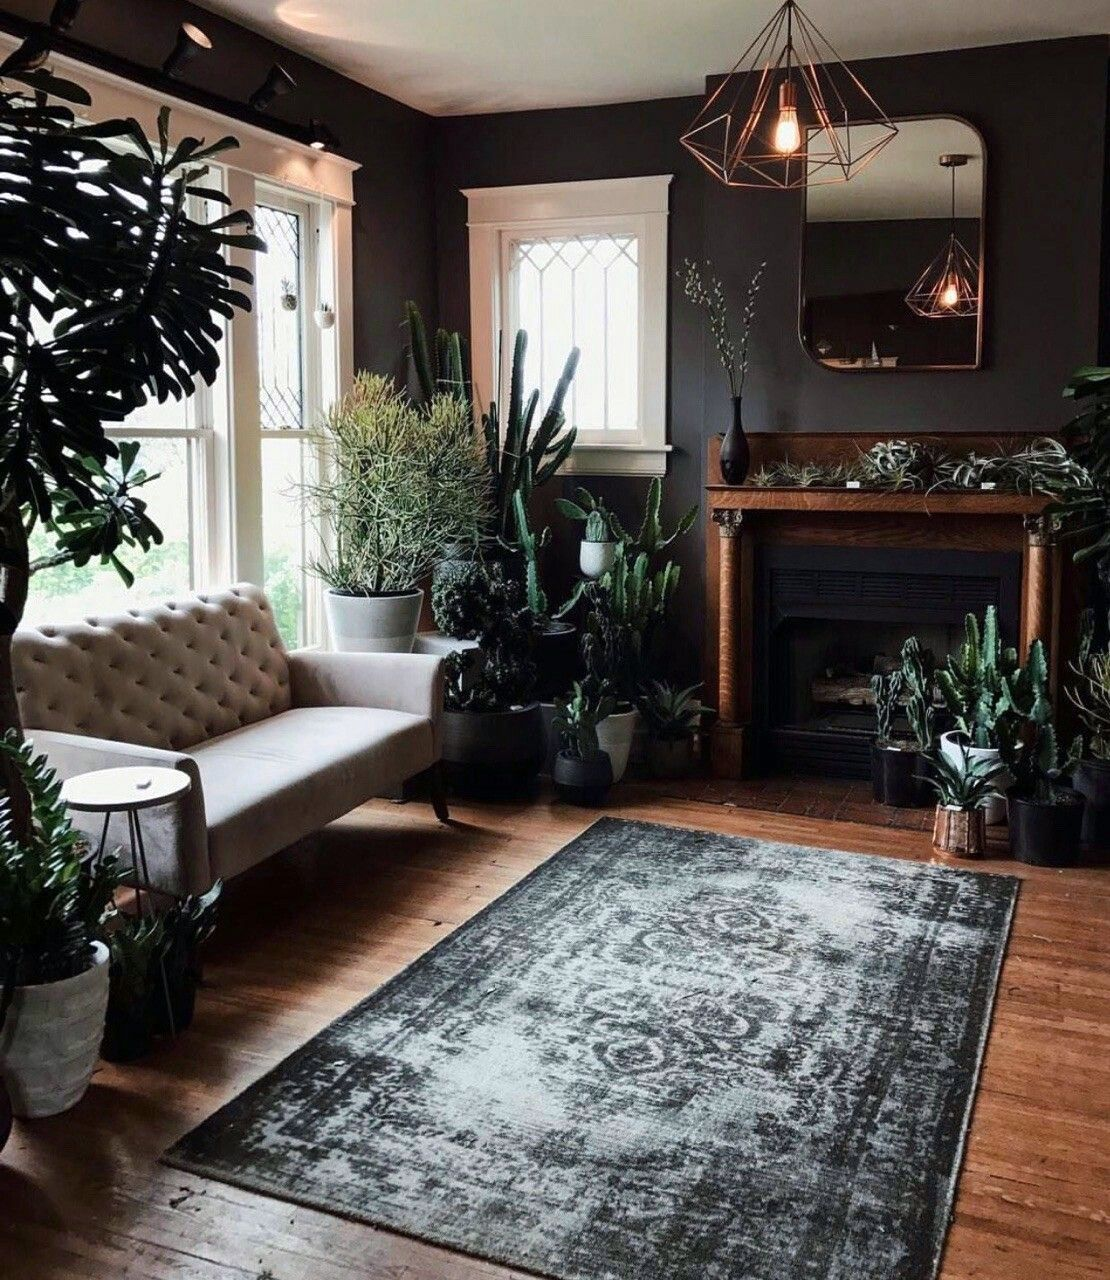 living room, wooden floor, black wall, wooden framed fireplace, white sofa, plants, golden framed pendants